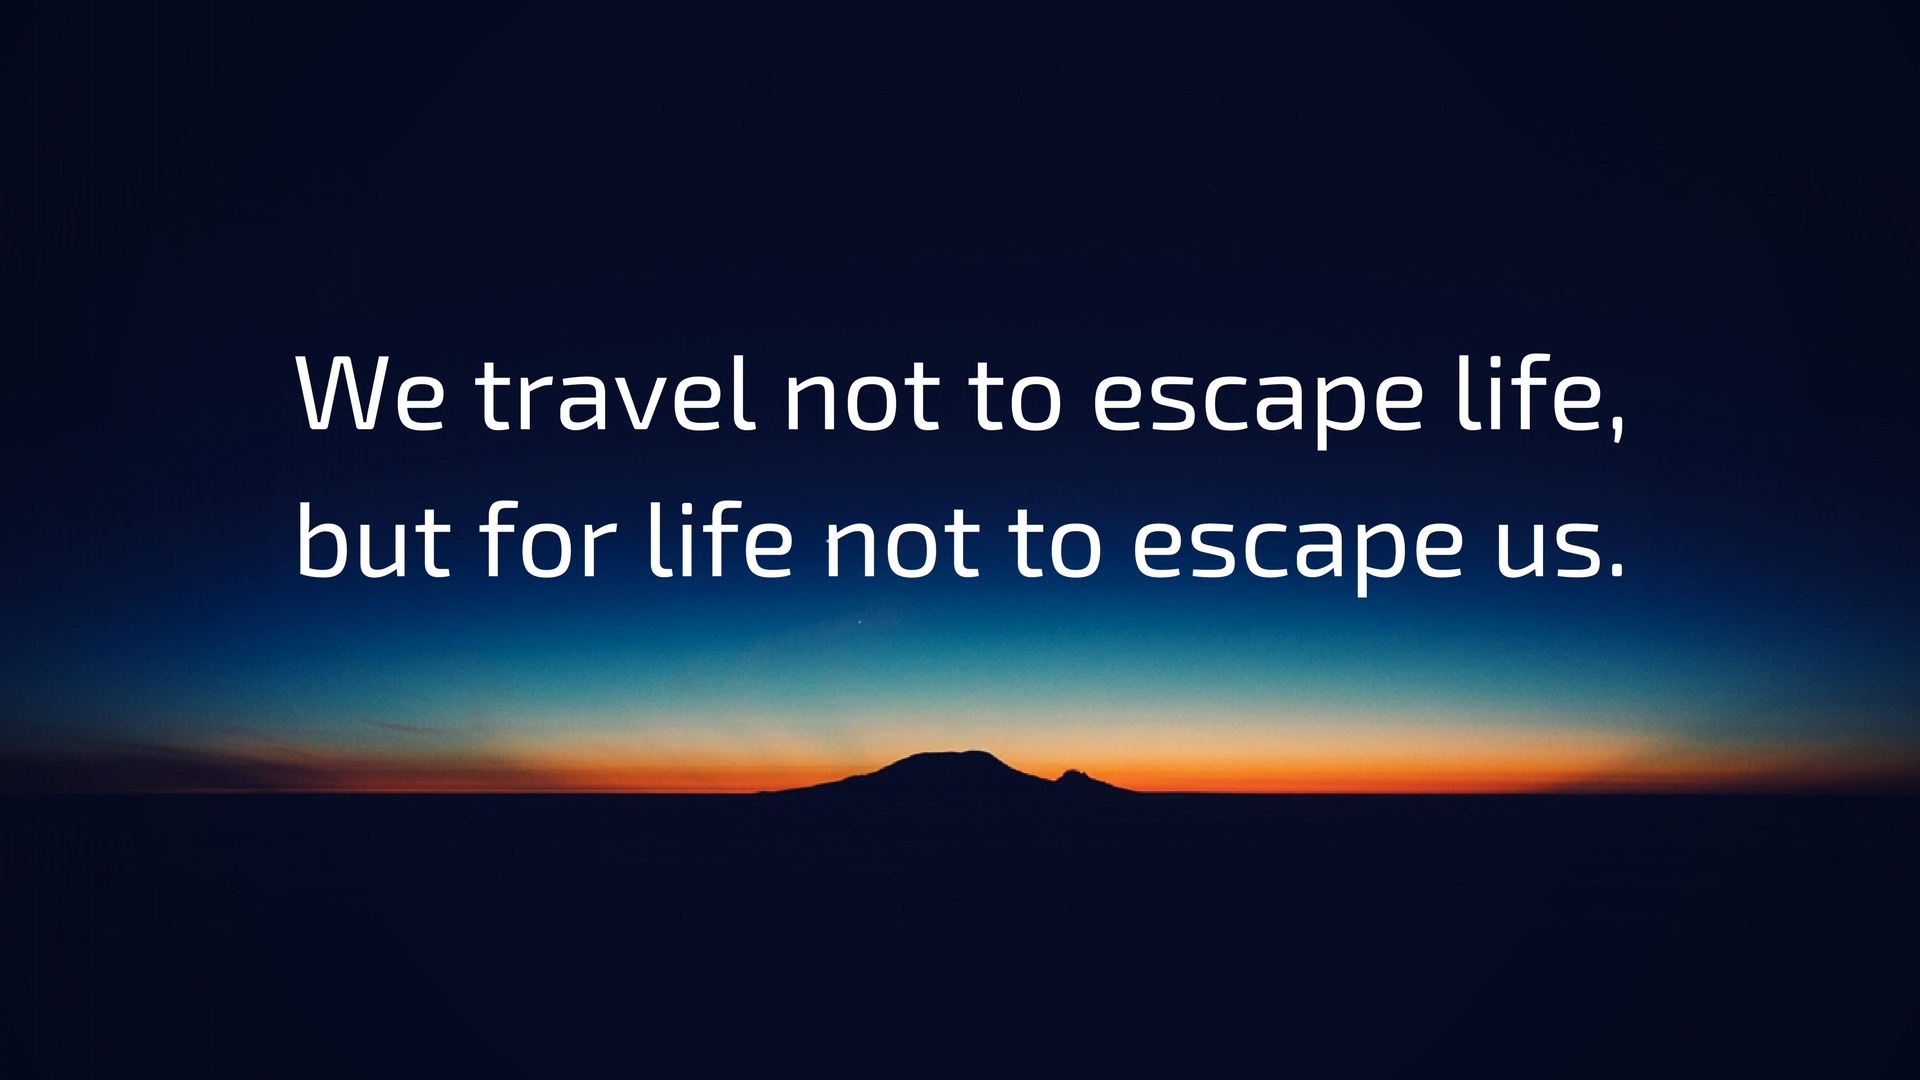 My 20 most favorite travel quotes